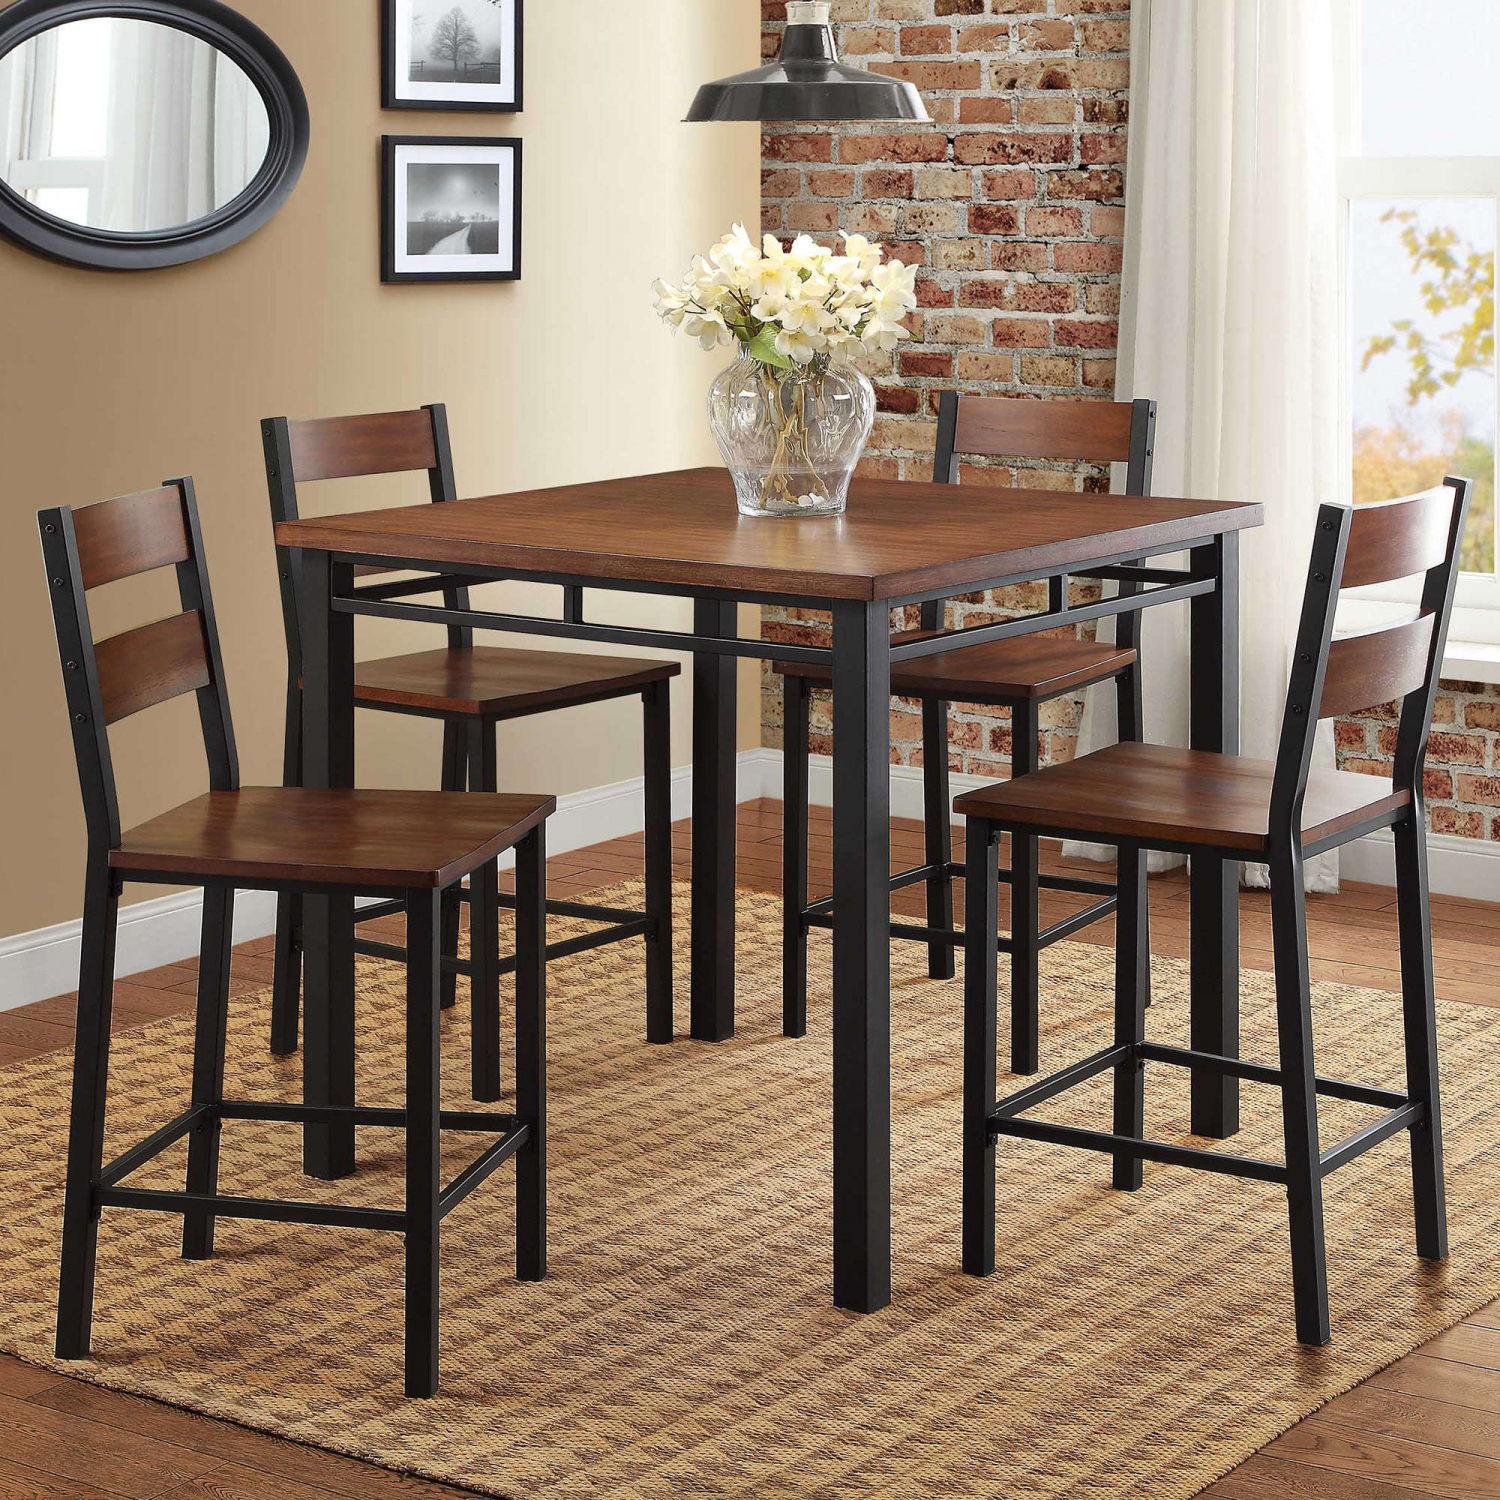 Kitchen Nook Tables   Details About 5 Piece Counter Height Table Chairs Dining Room Kitchen Nook Set Brown Oak